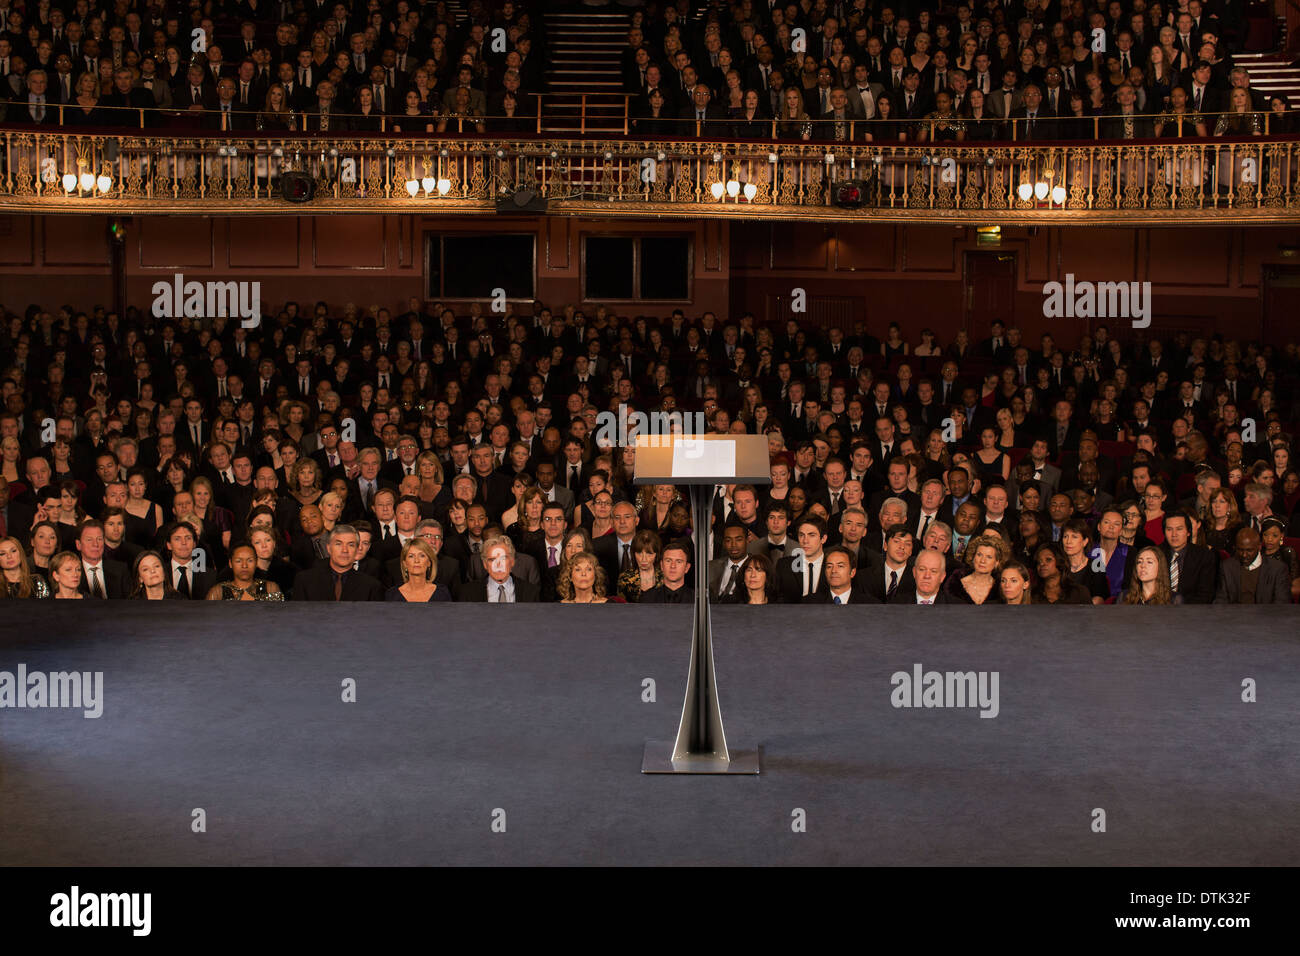 Empty podium on stage in theater - Stock Image